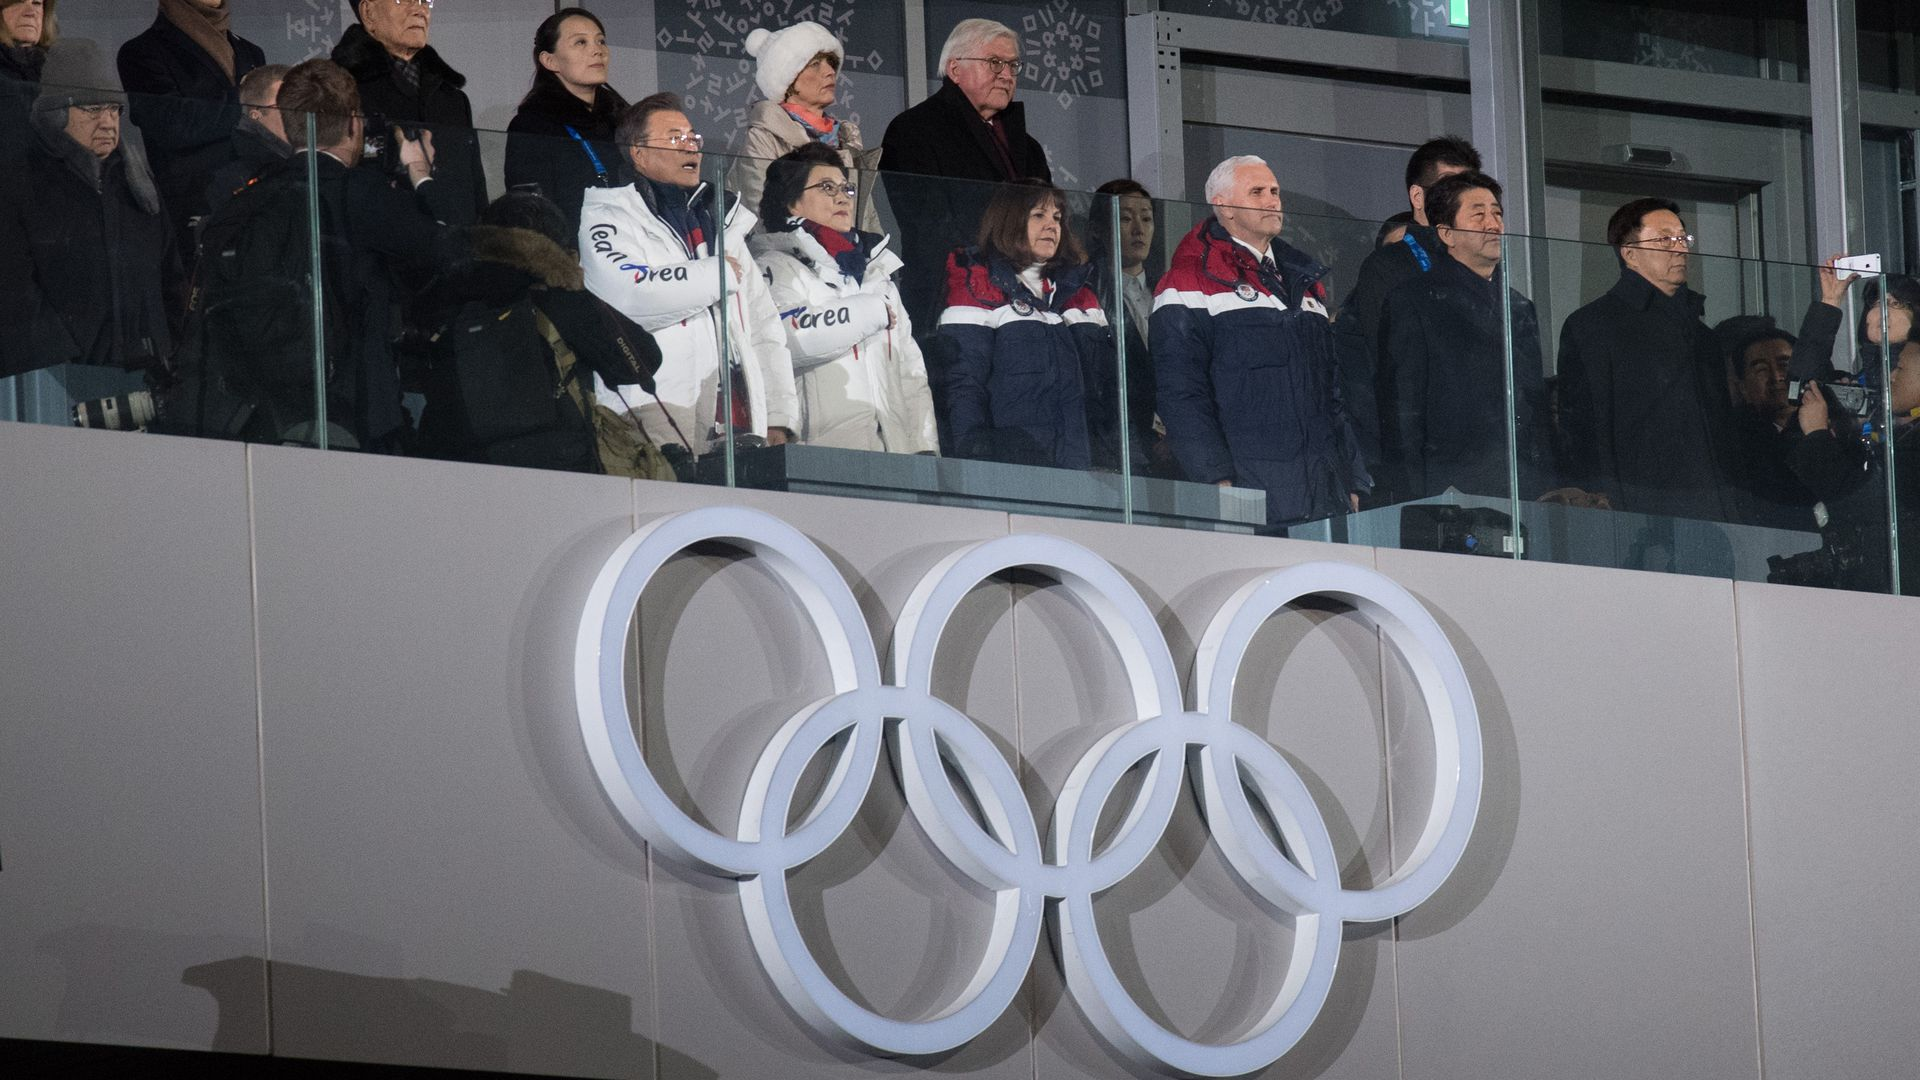 Vice President Pence and South Korea President Moon and other world leaders at Winter Olympics in South Korea